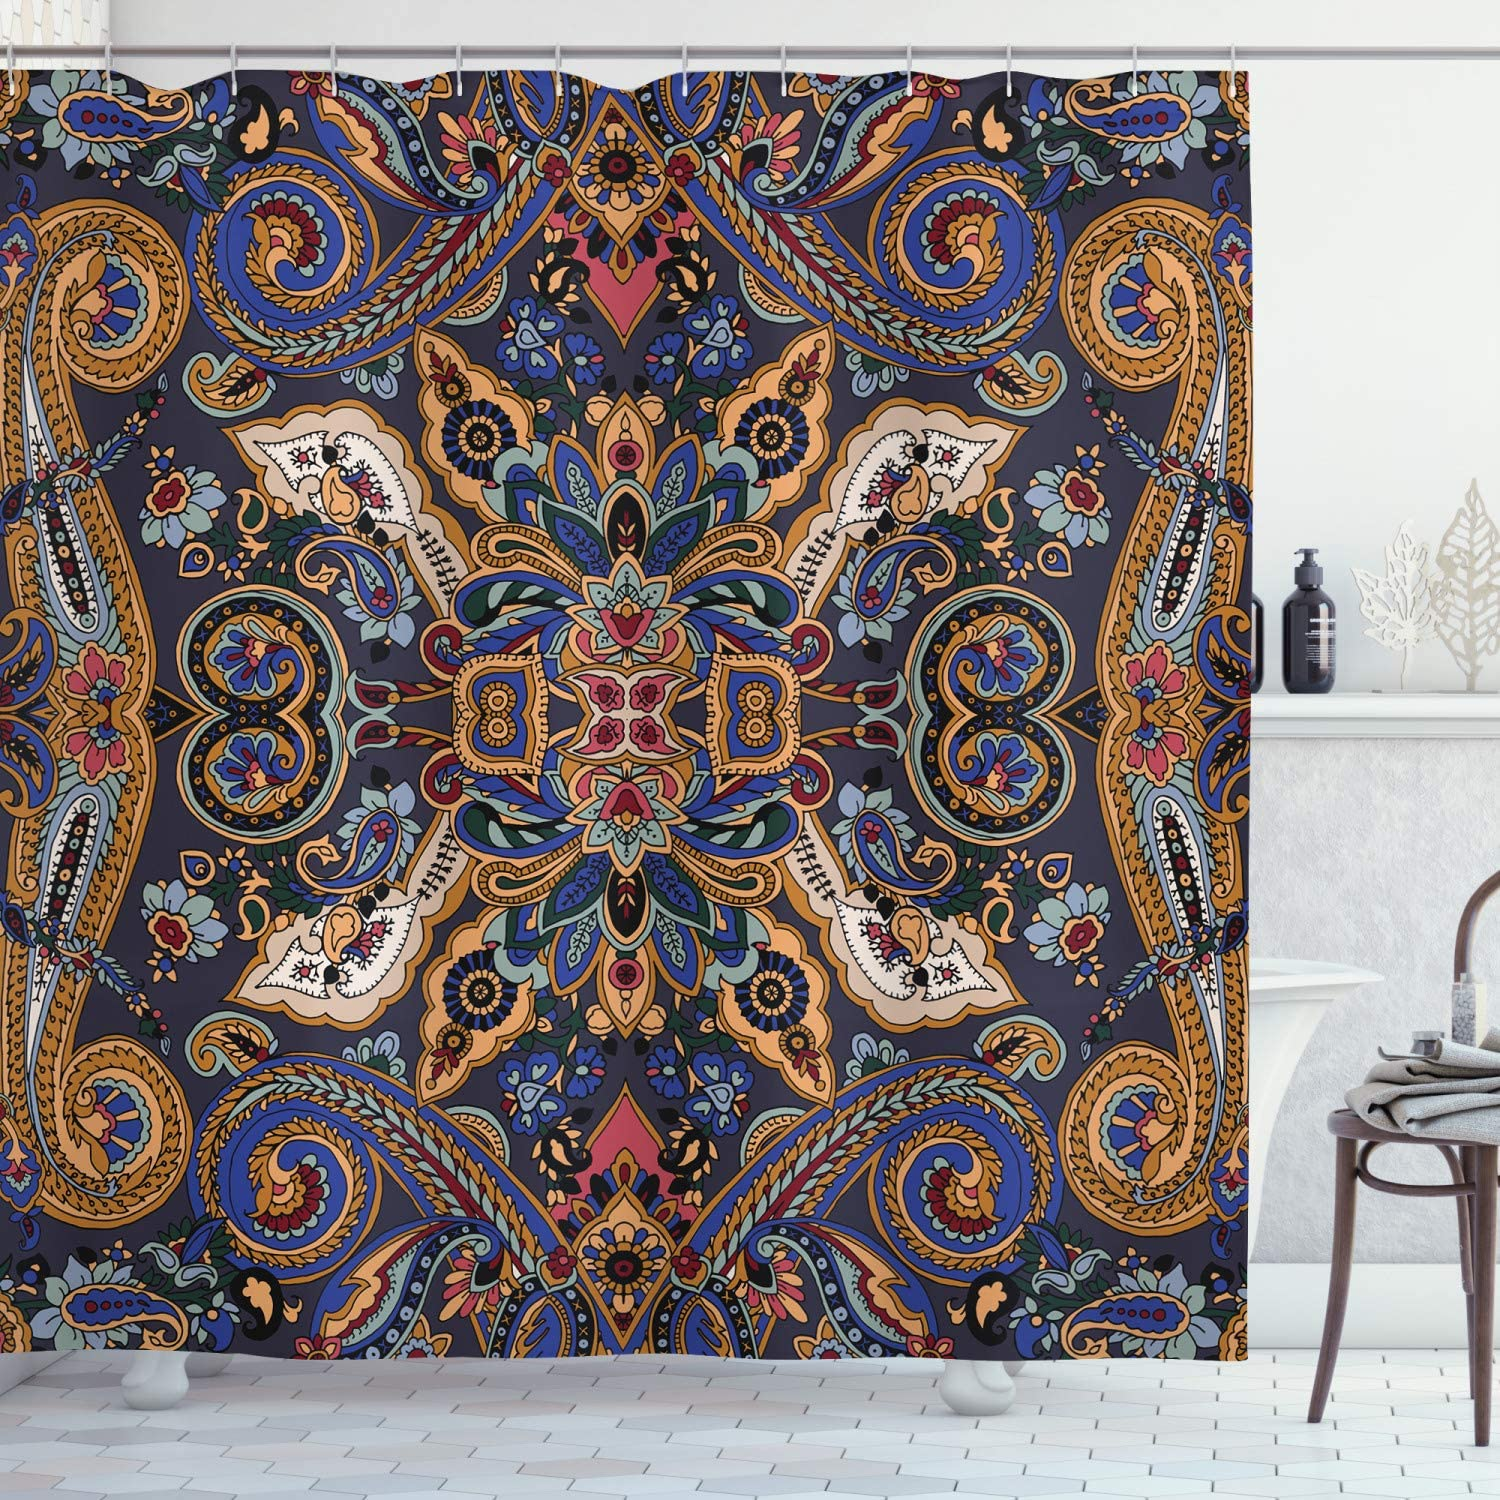 Ambesonne Paisley Shower Curtain, Historical Moroccan Florets with Slavic Effects Heritage Design, Cloth Fabric Bathroom Decor Set with Hooks, 75